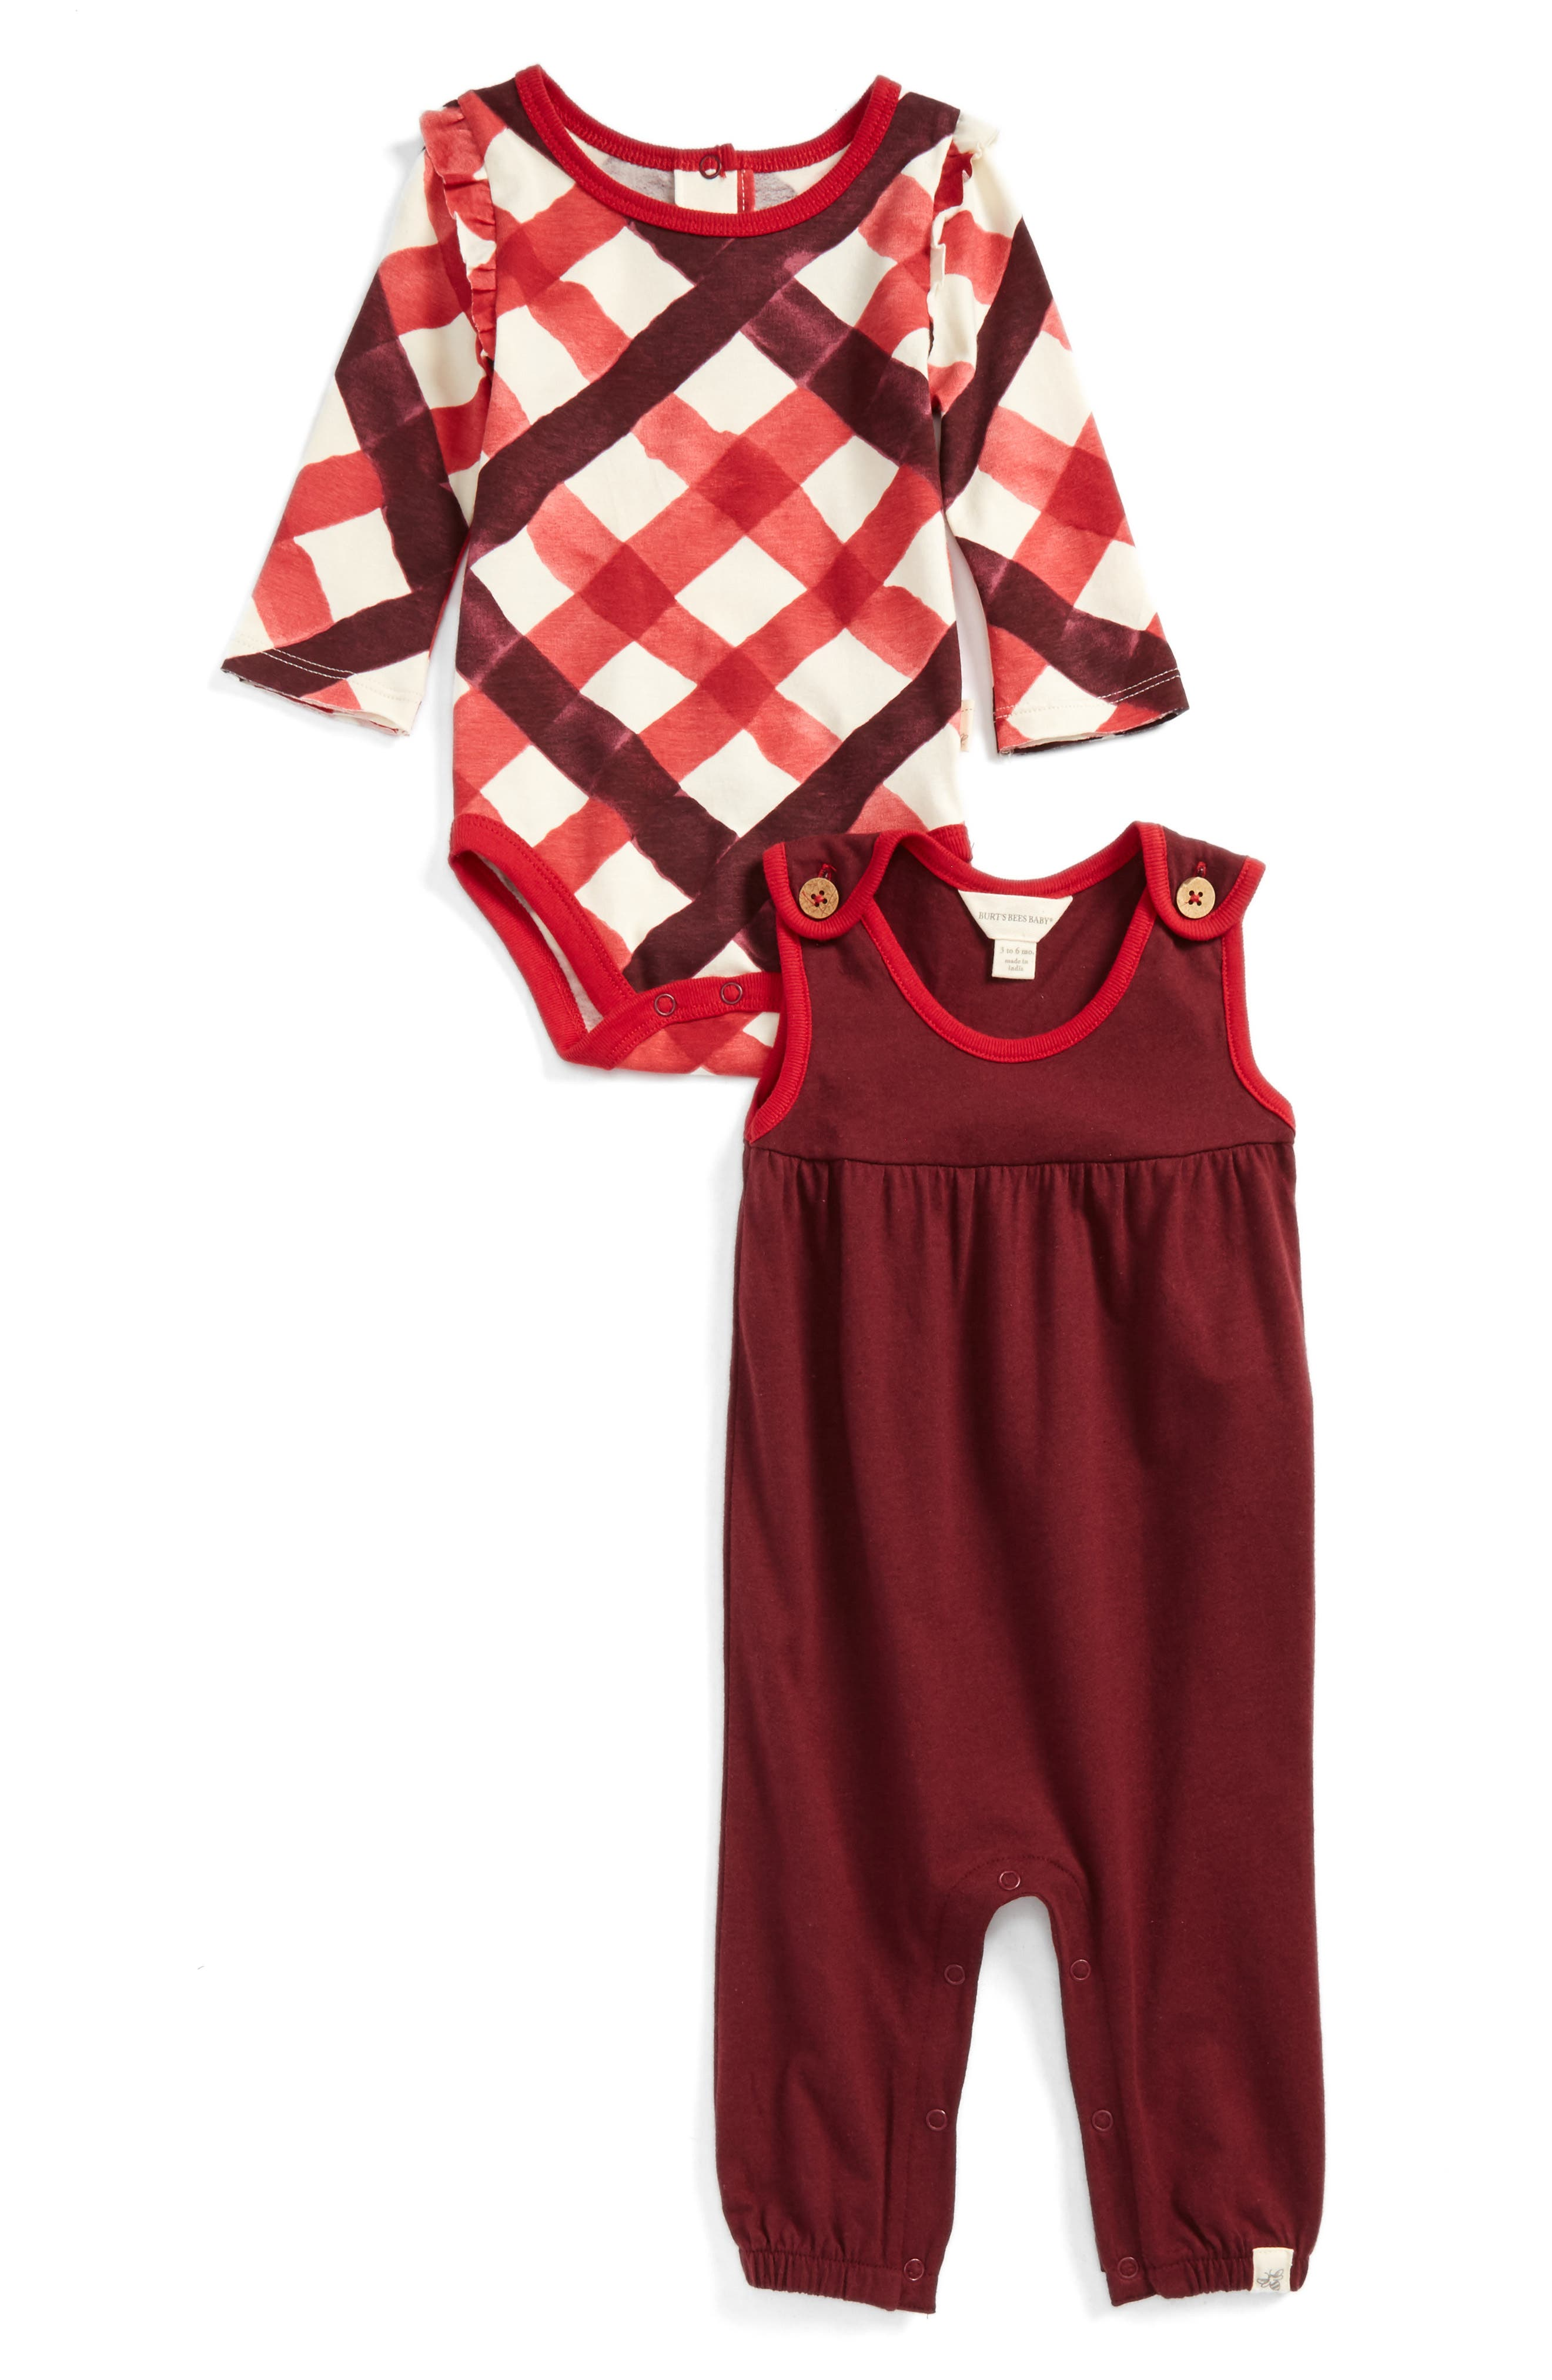 Alternate Image 1 Selected - Burt's Bees Baby Ruffle Bodysuit & Romper Set (Baby Girls)